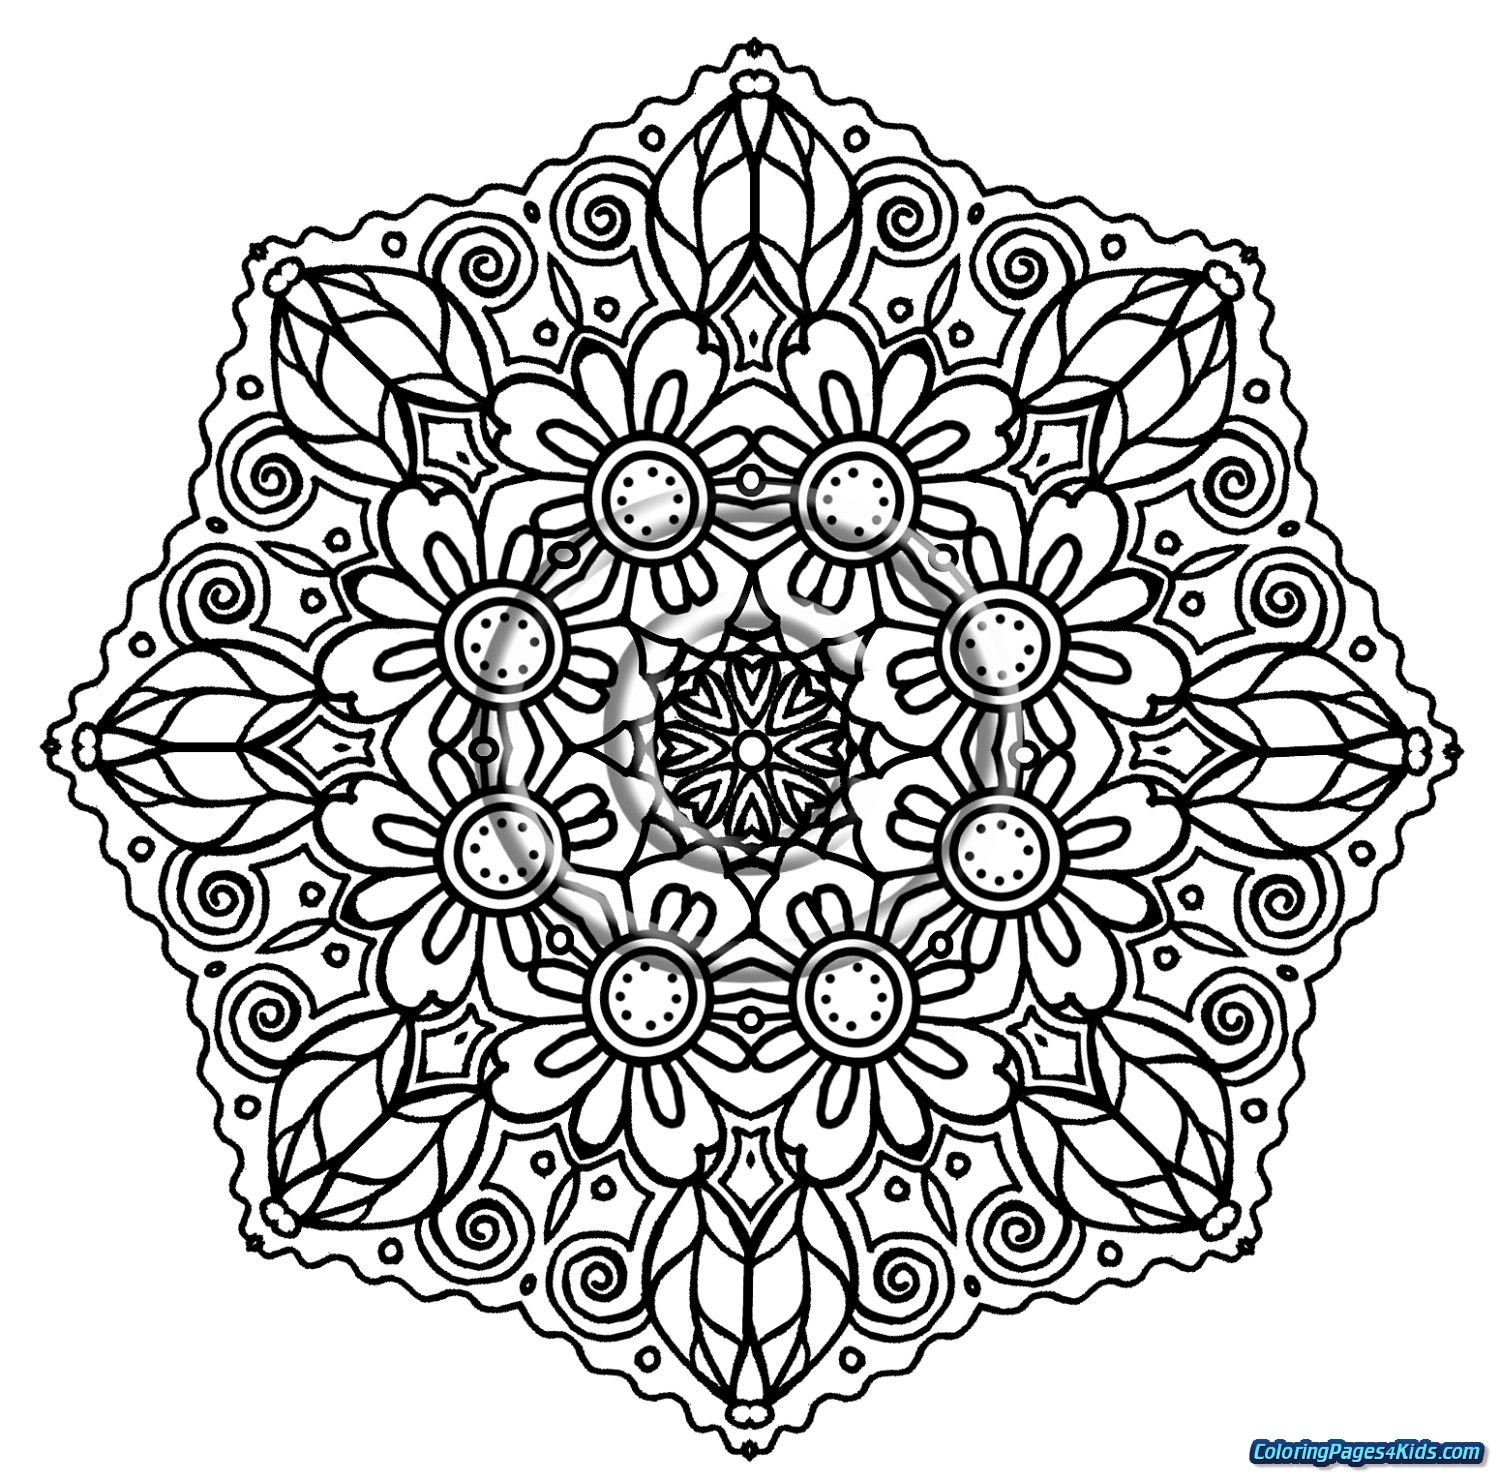 Printable Mandala Coloring Pages - Lezincnyc - Free Printable Mandala Coloring Pages